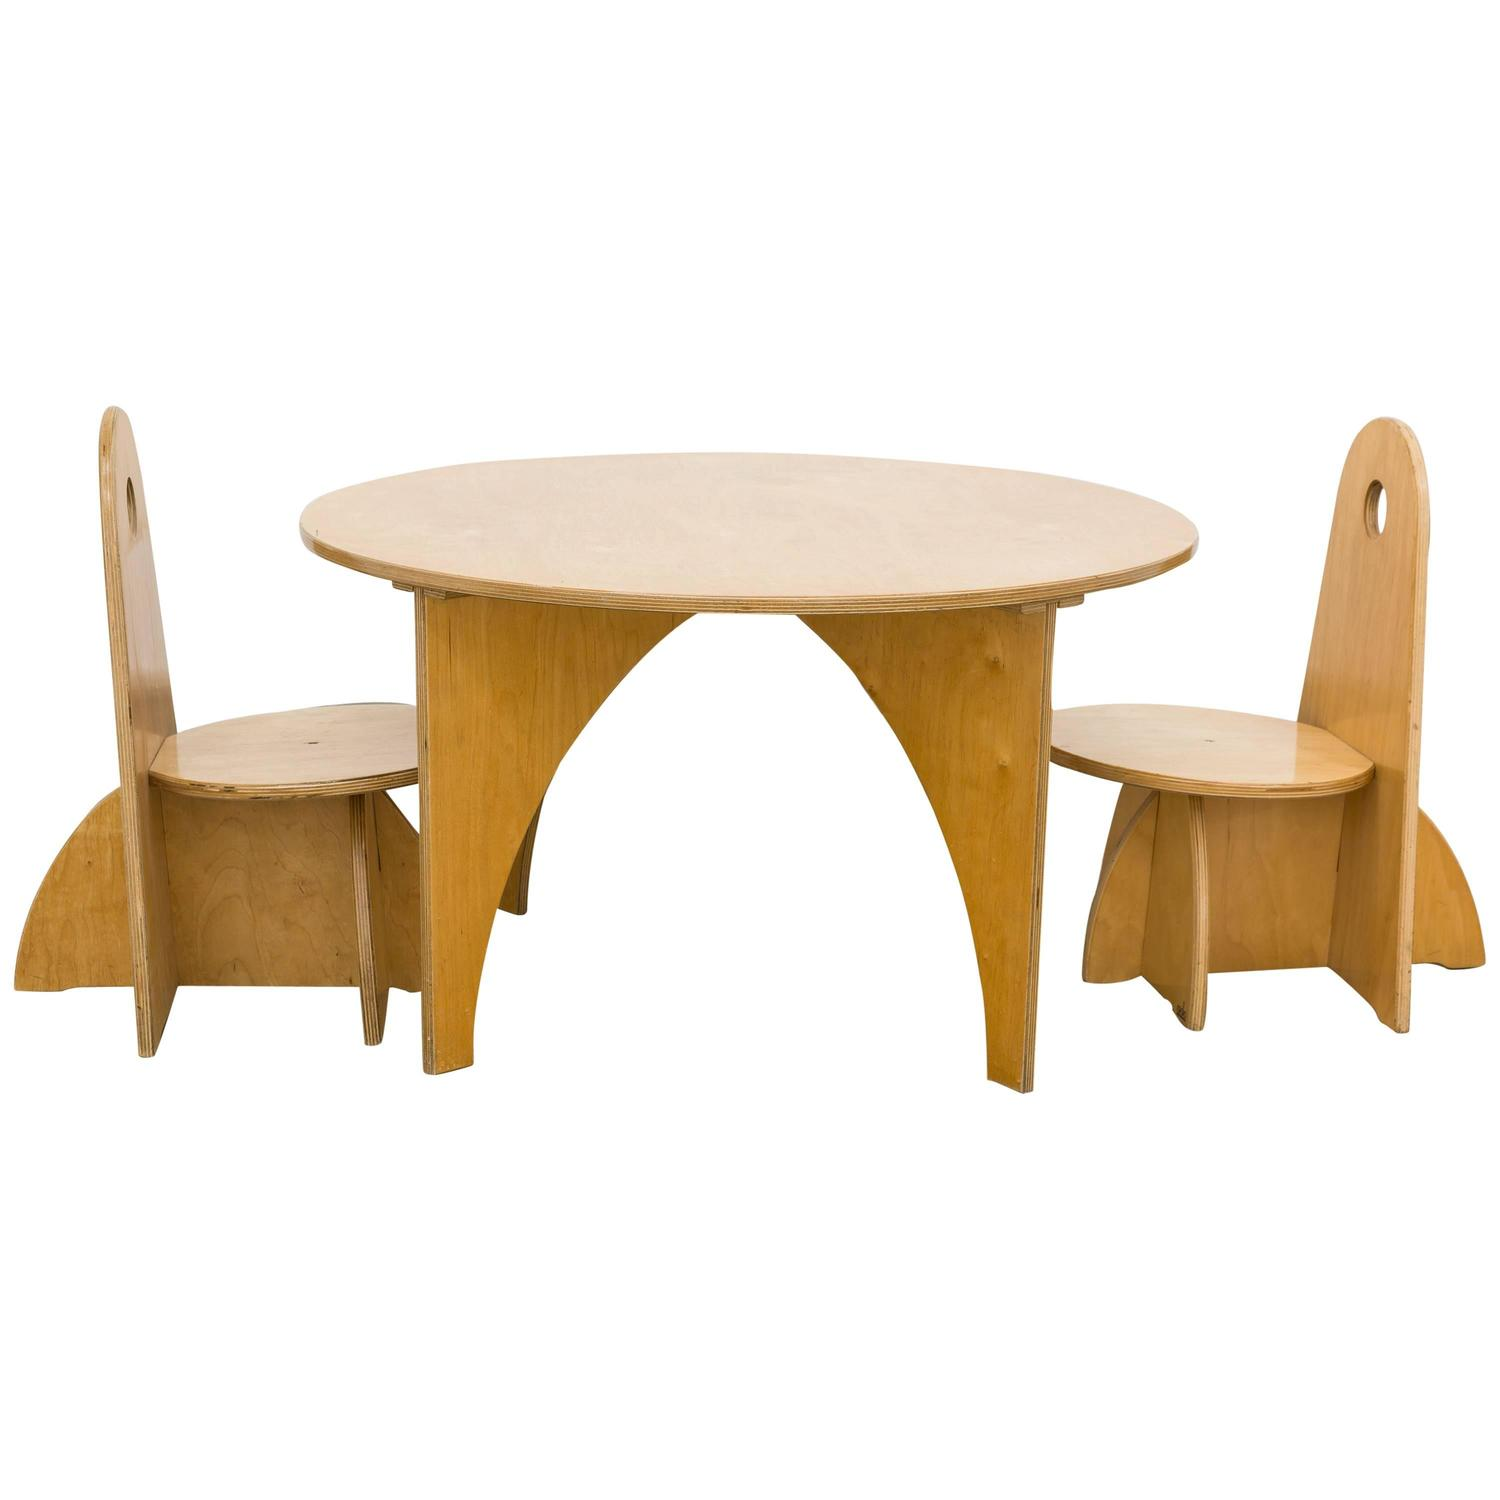 play table and chairs comfy for kids ado two by ko verzuu in plywood